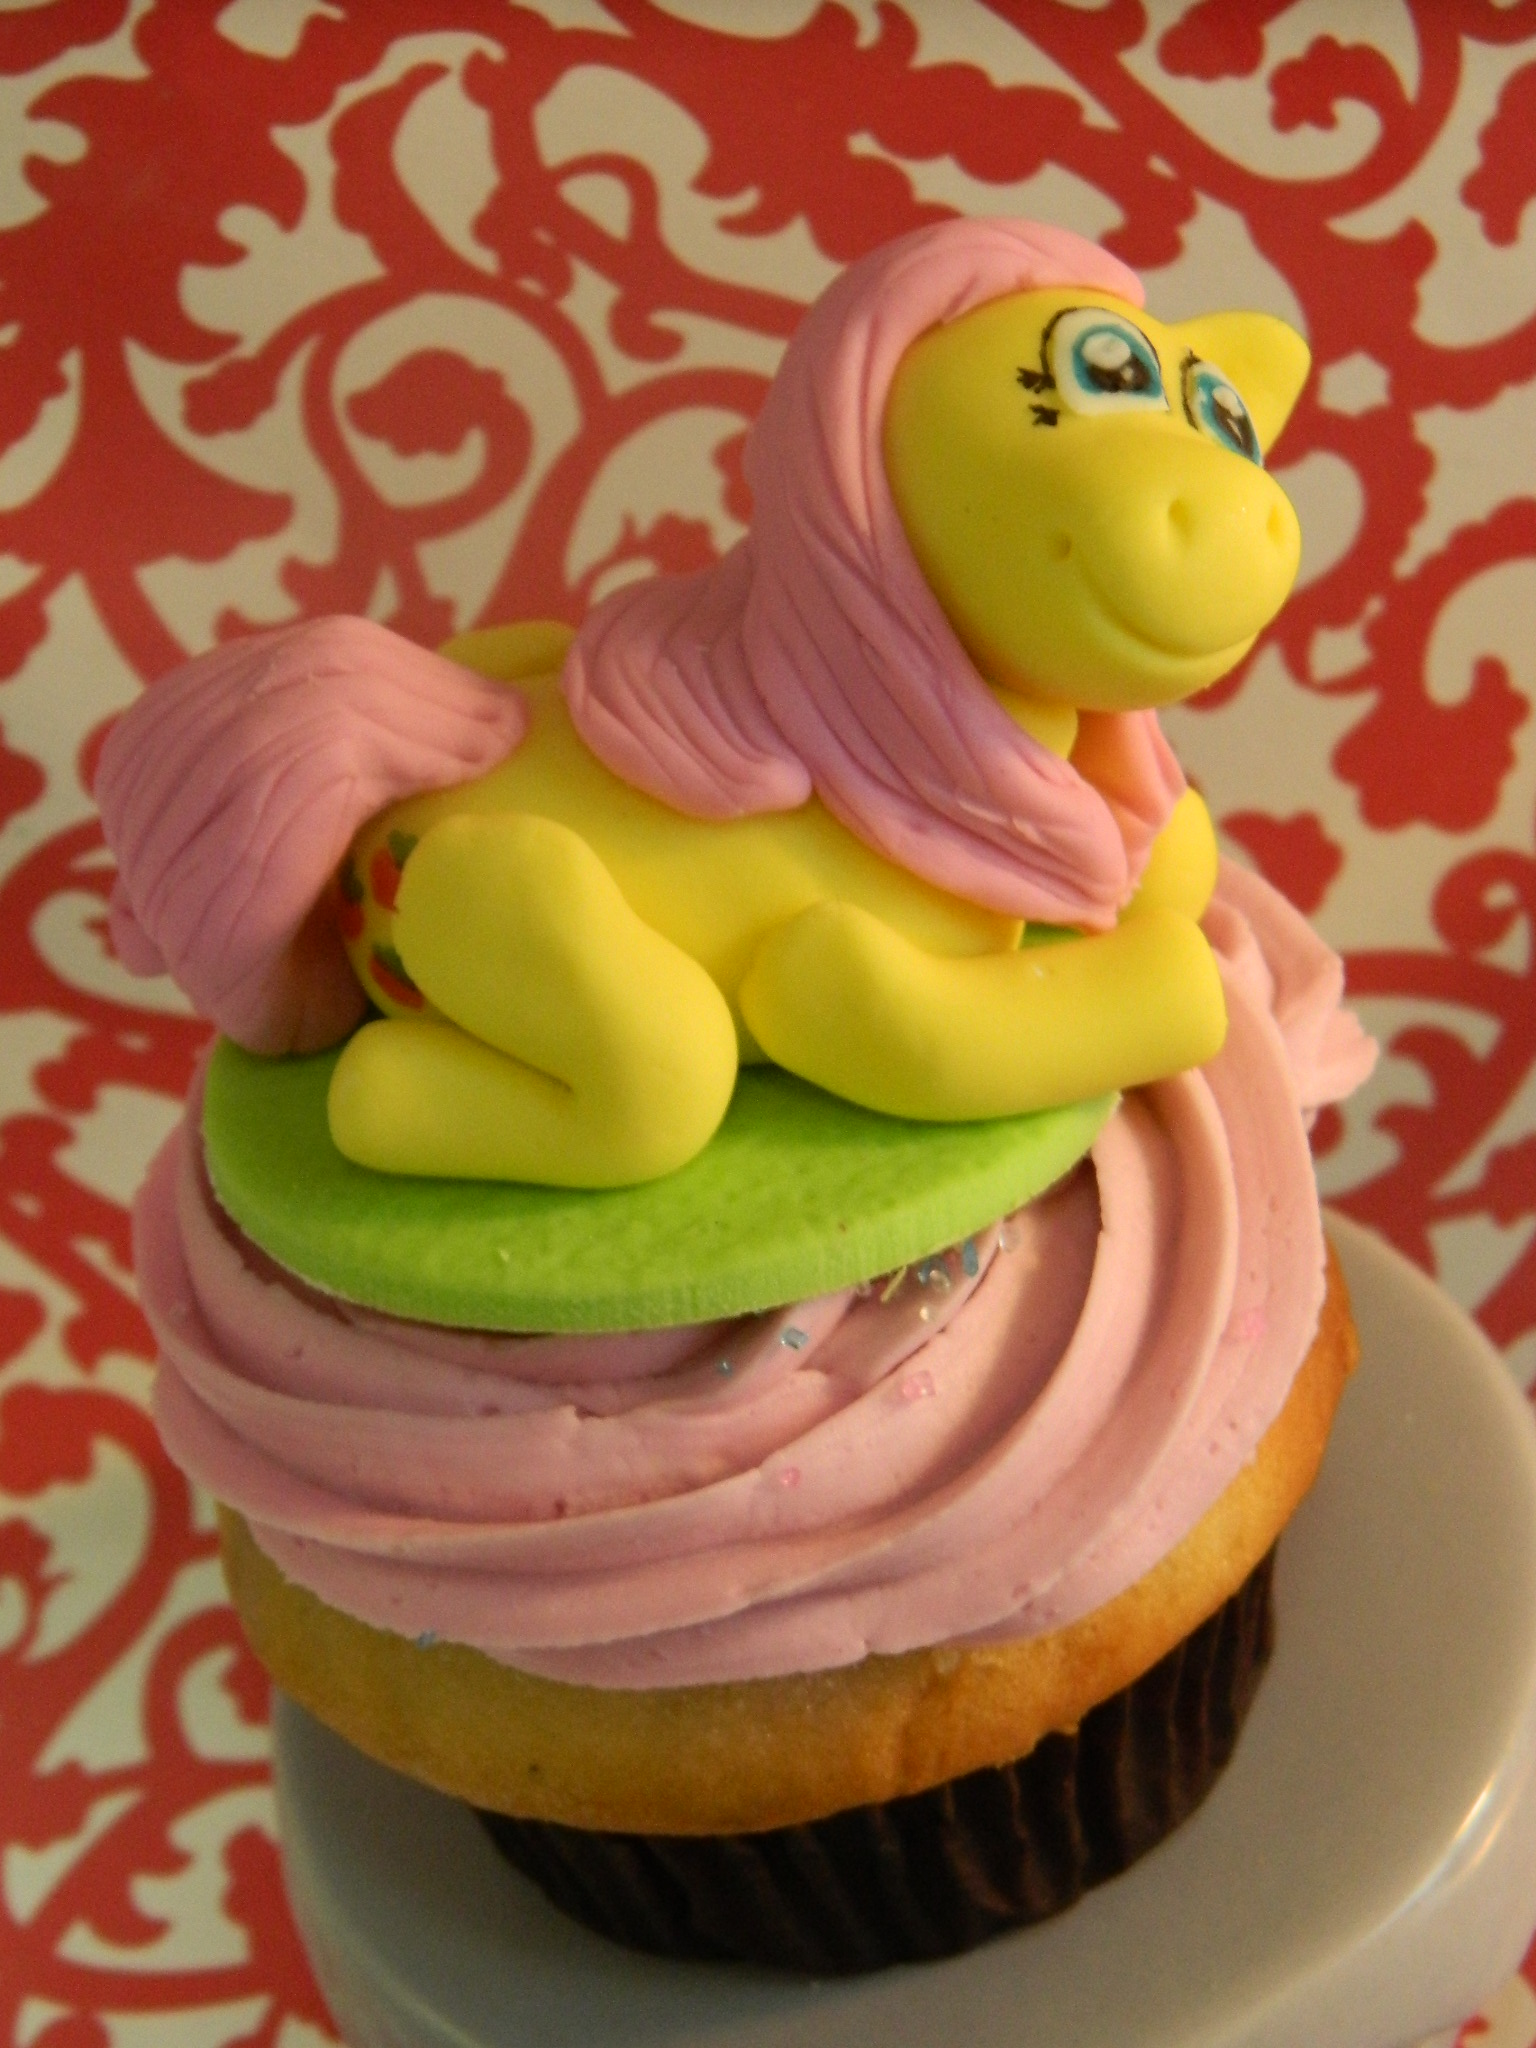 My little pony custom cupcake